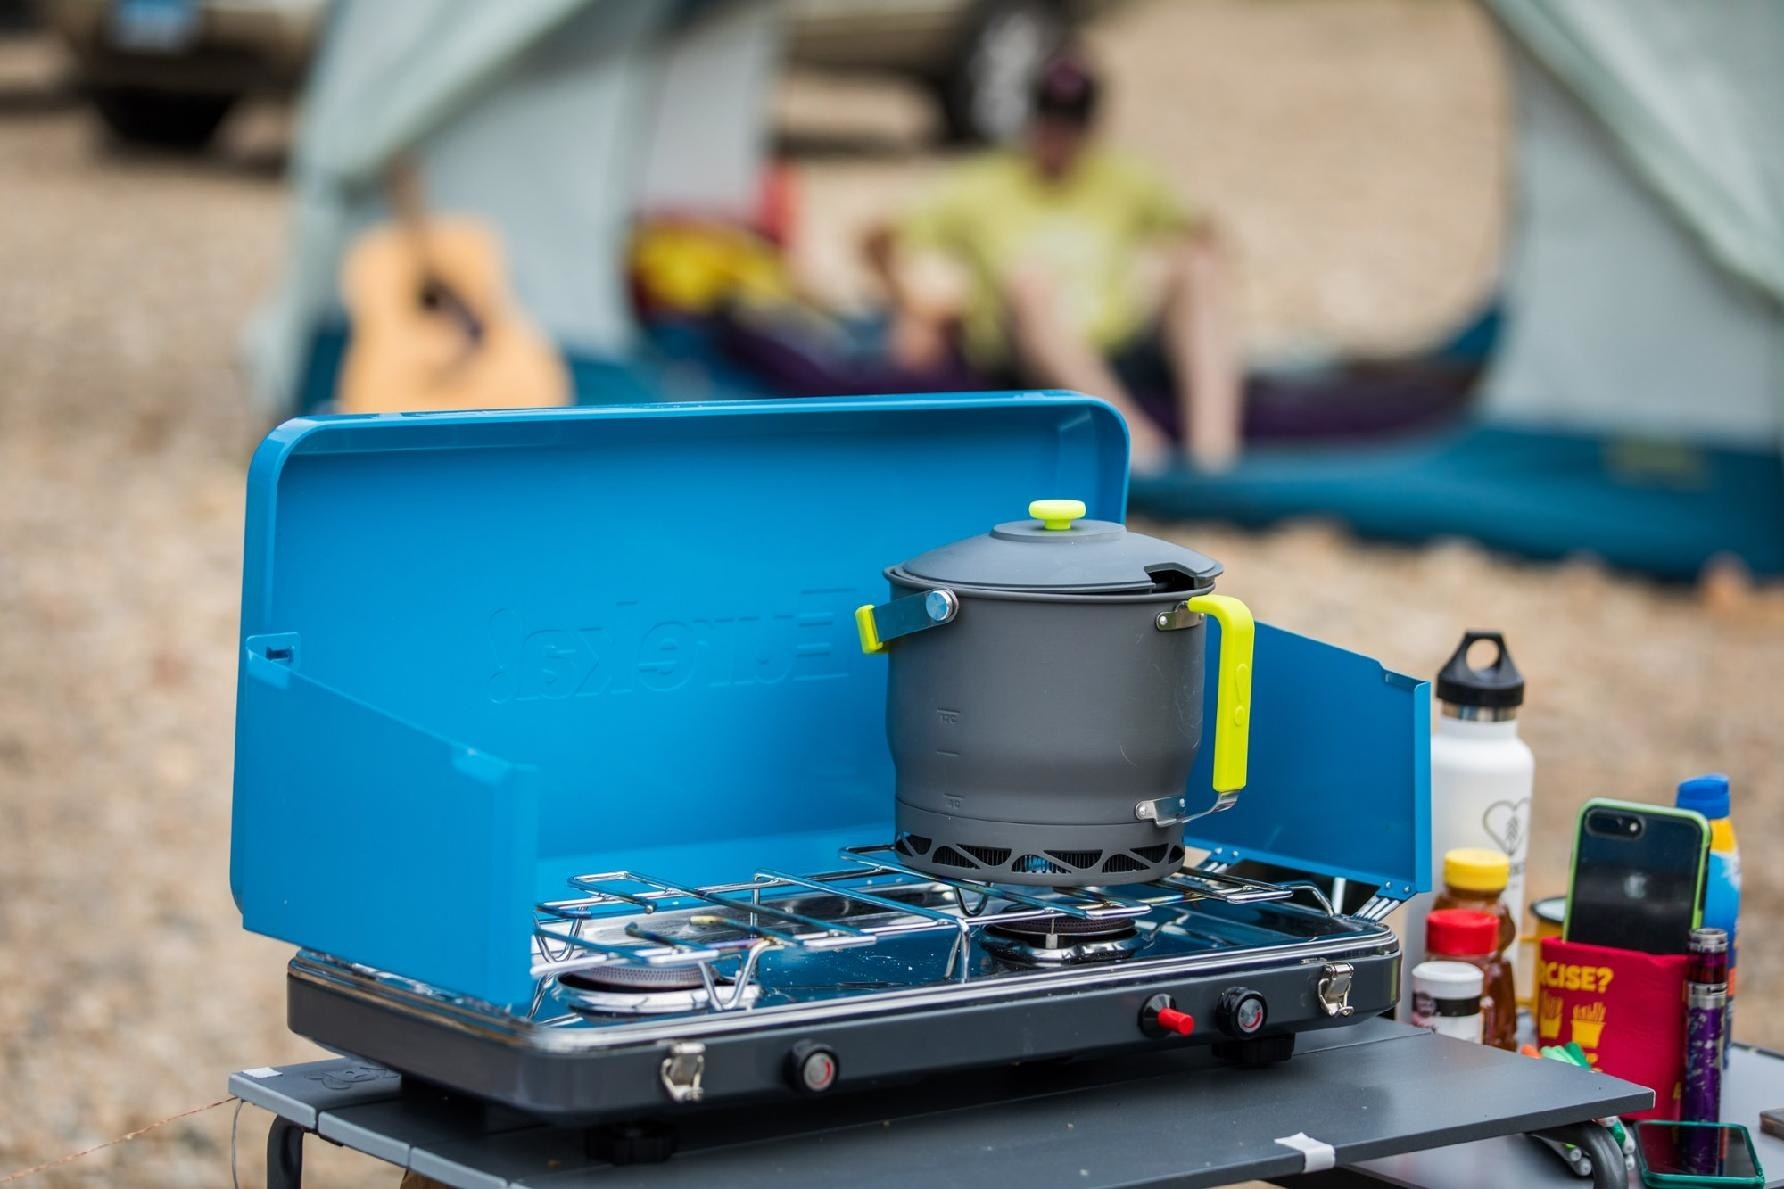 The blue burner camp stove with a pot on top of it